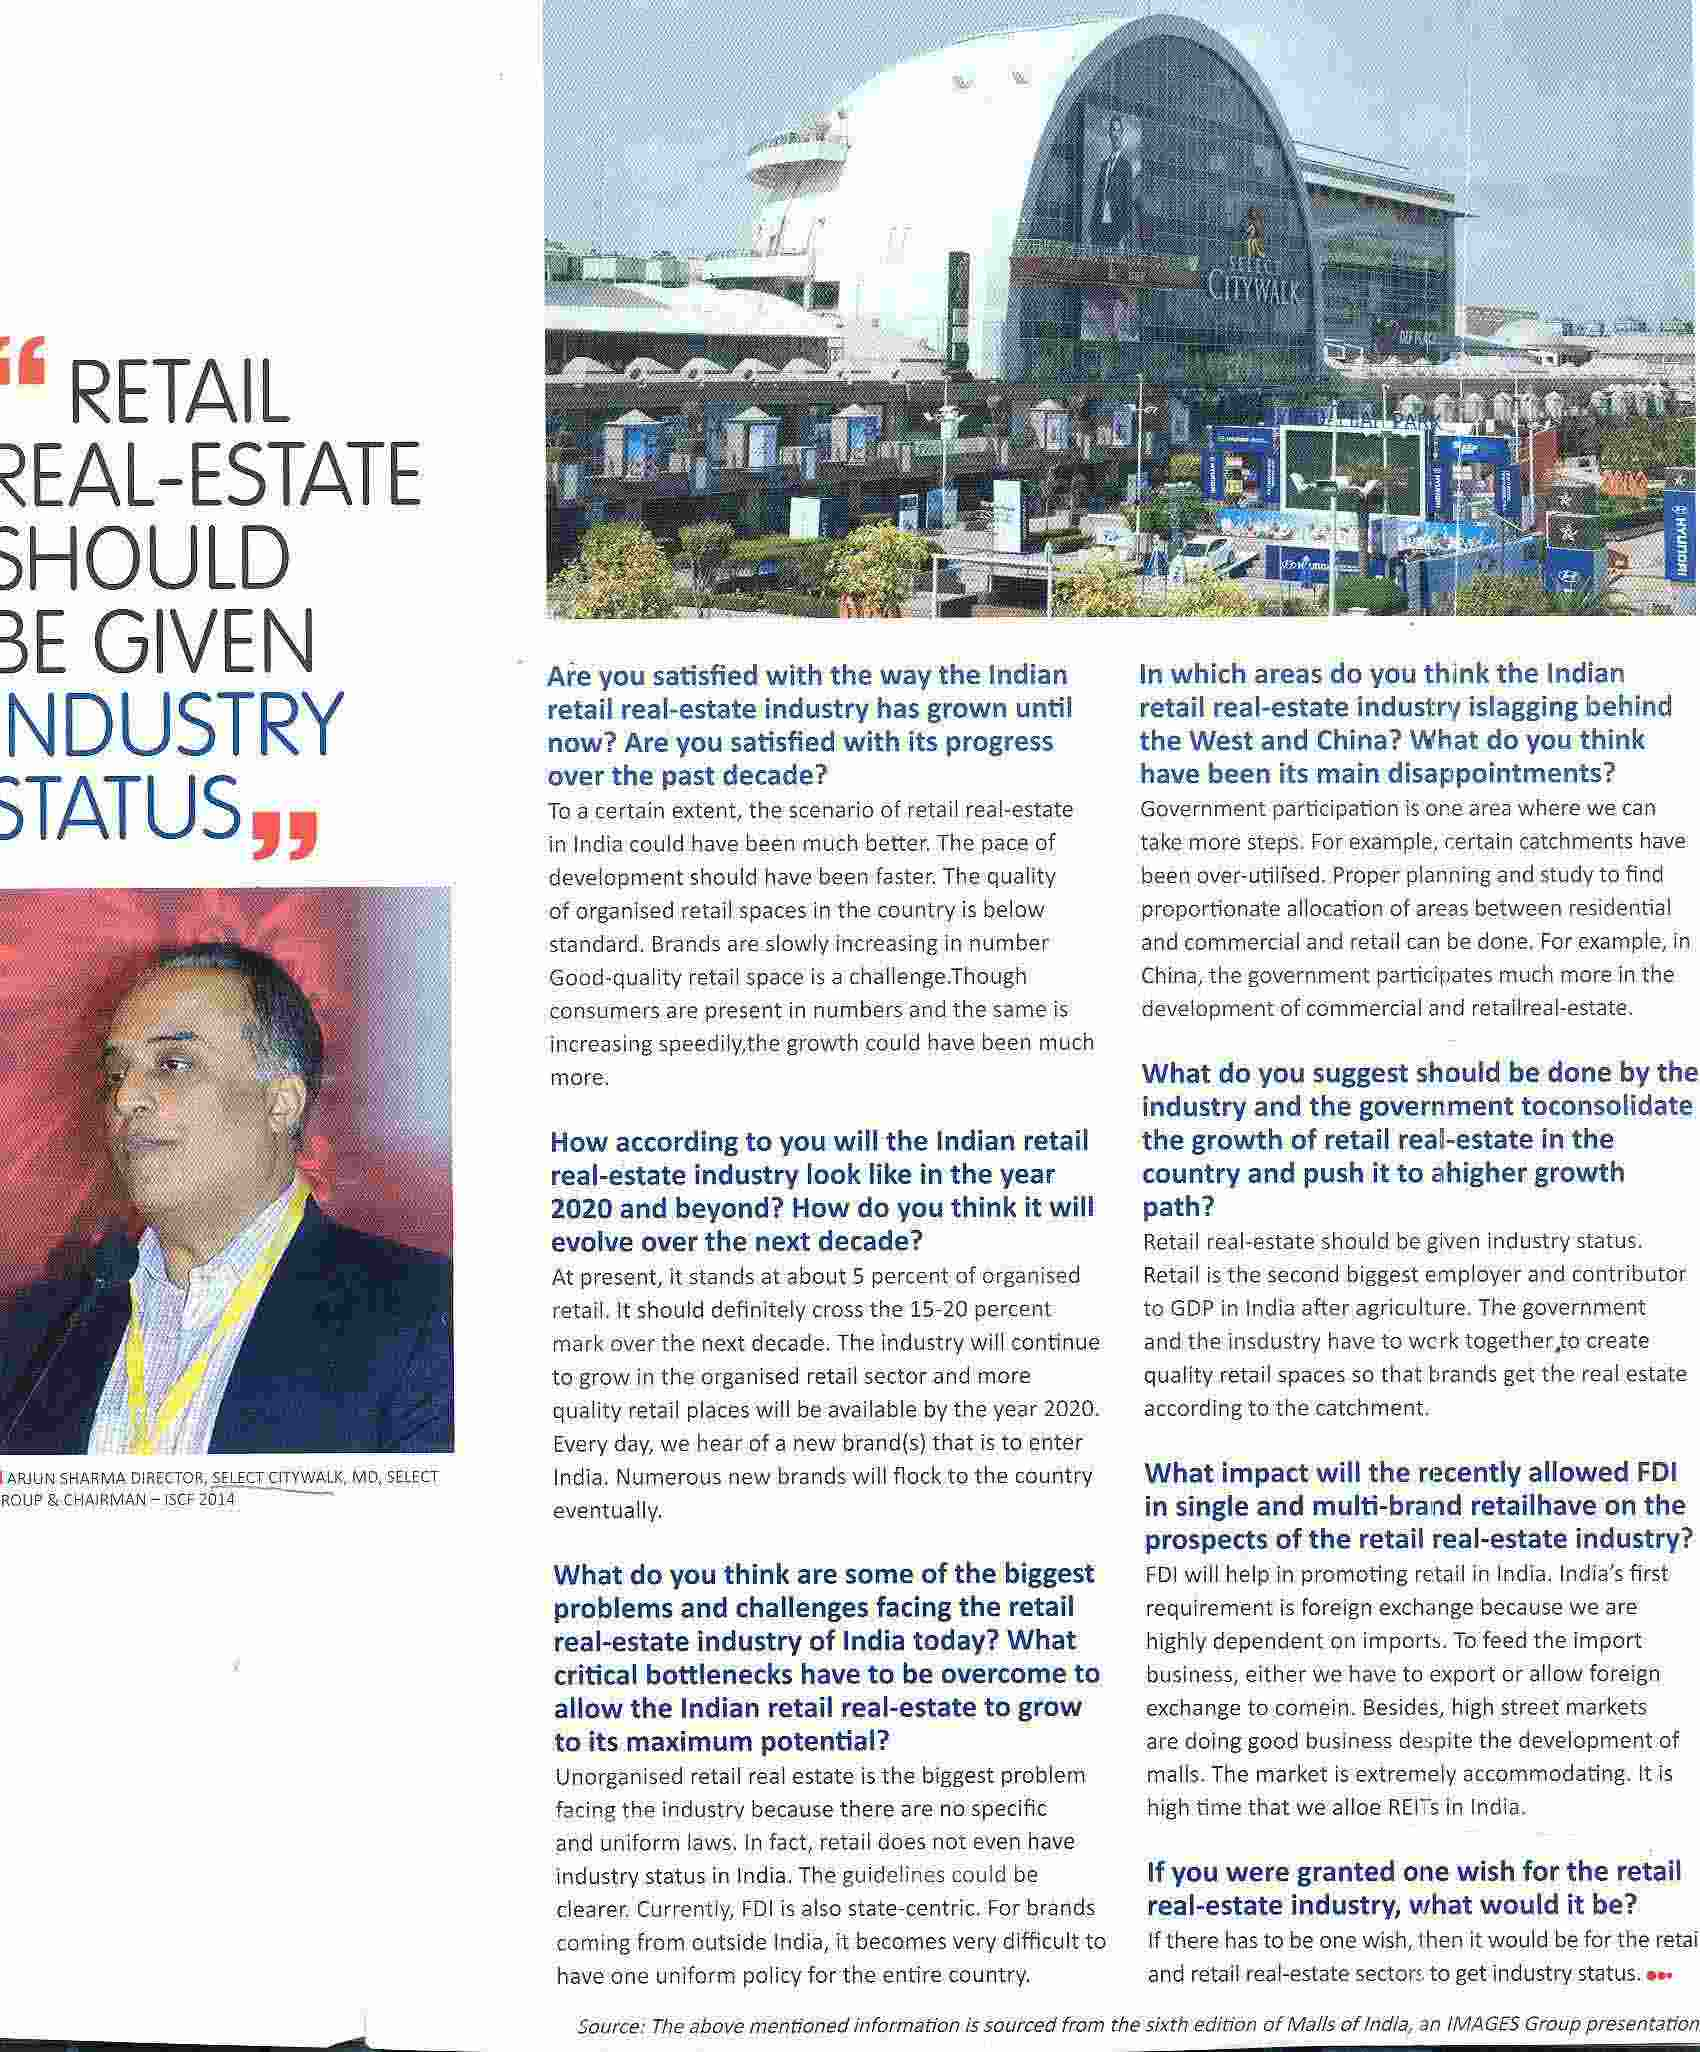 Retail Real-Estate should be given Industry Status